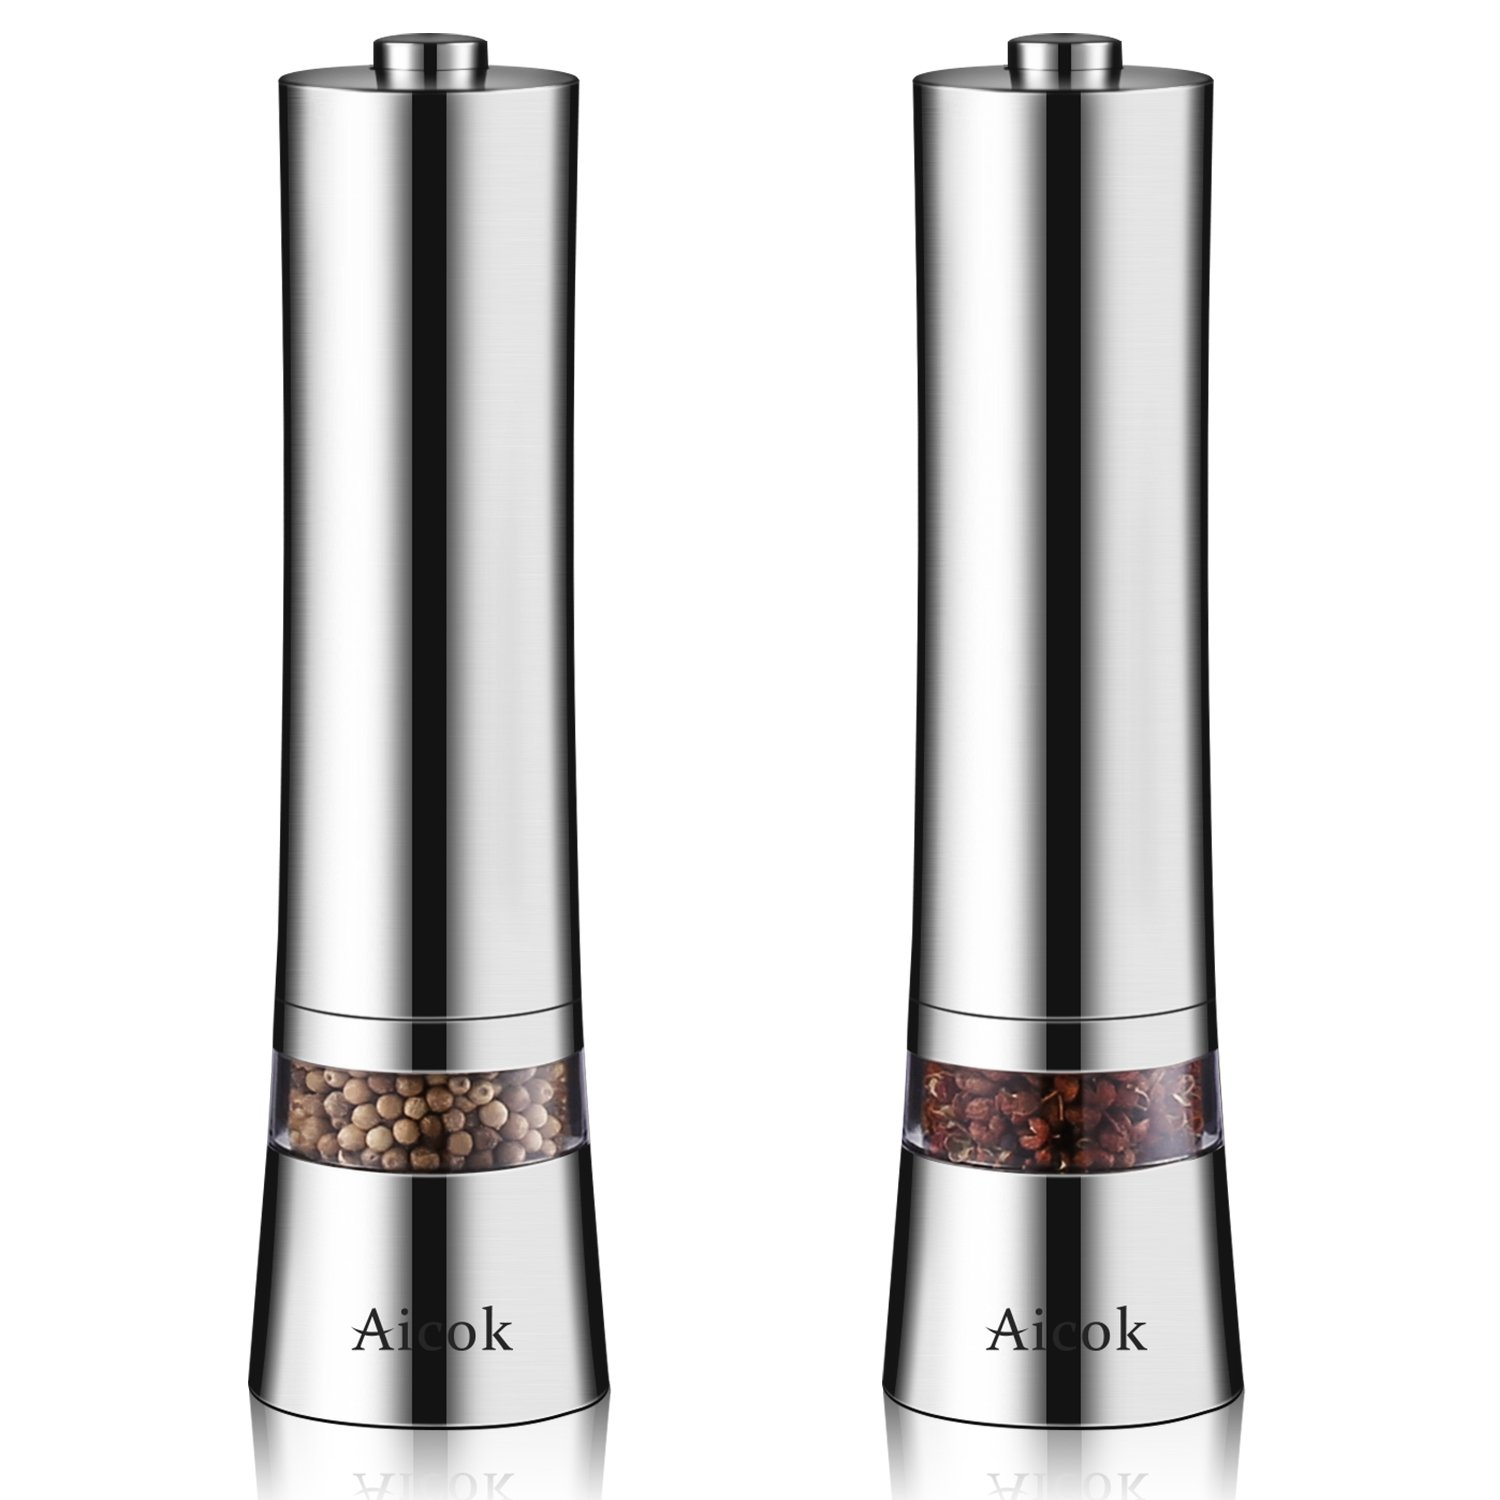 Aicok Electric Salt and Pepper Grinder Set Pack Of 2 Stainless